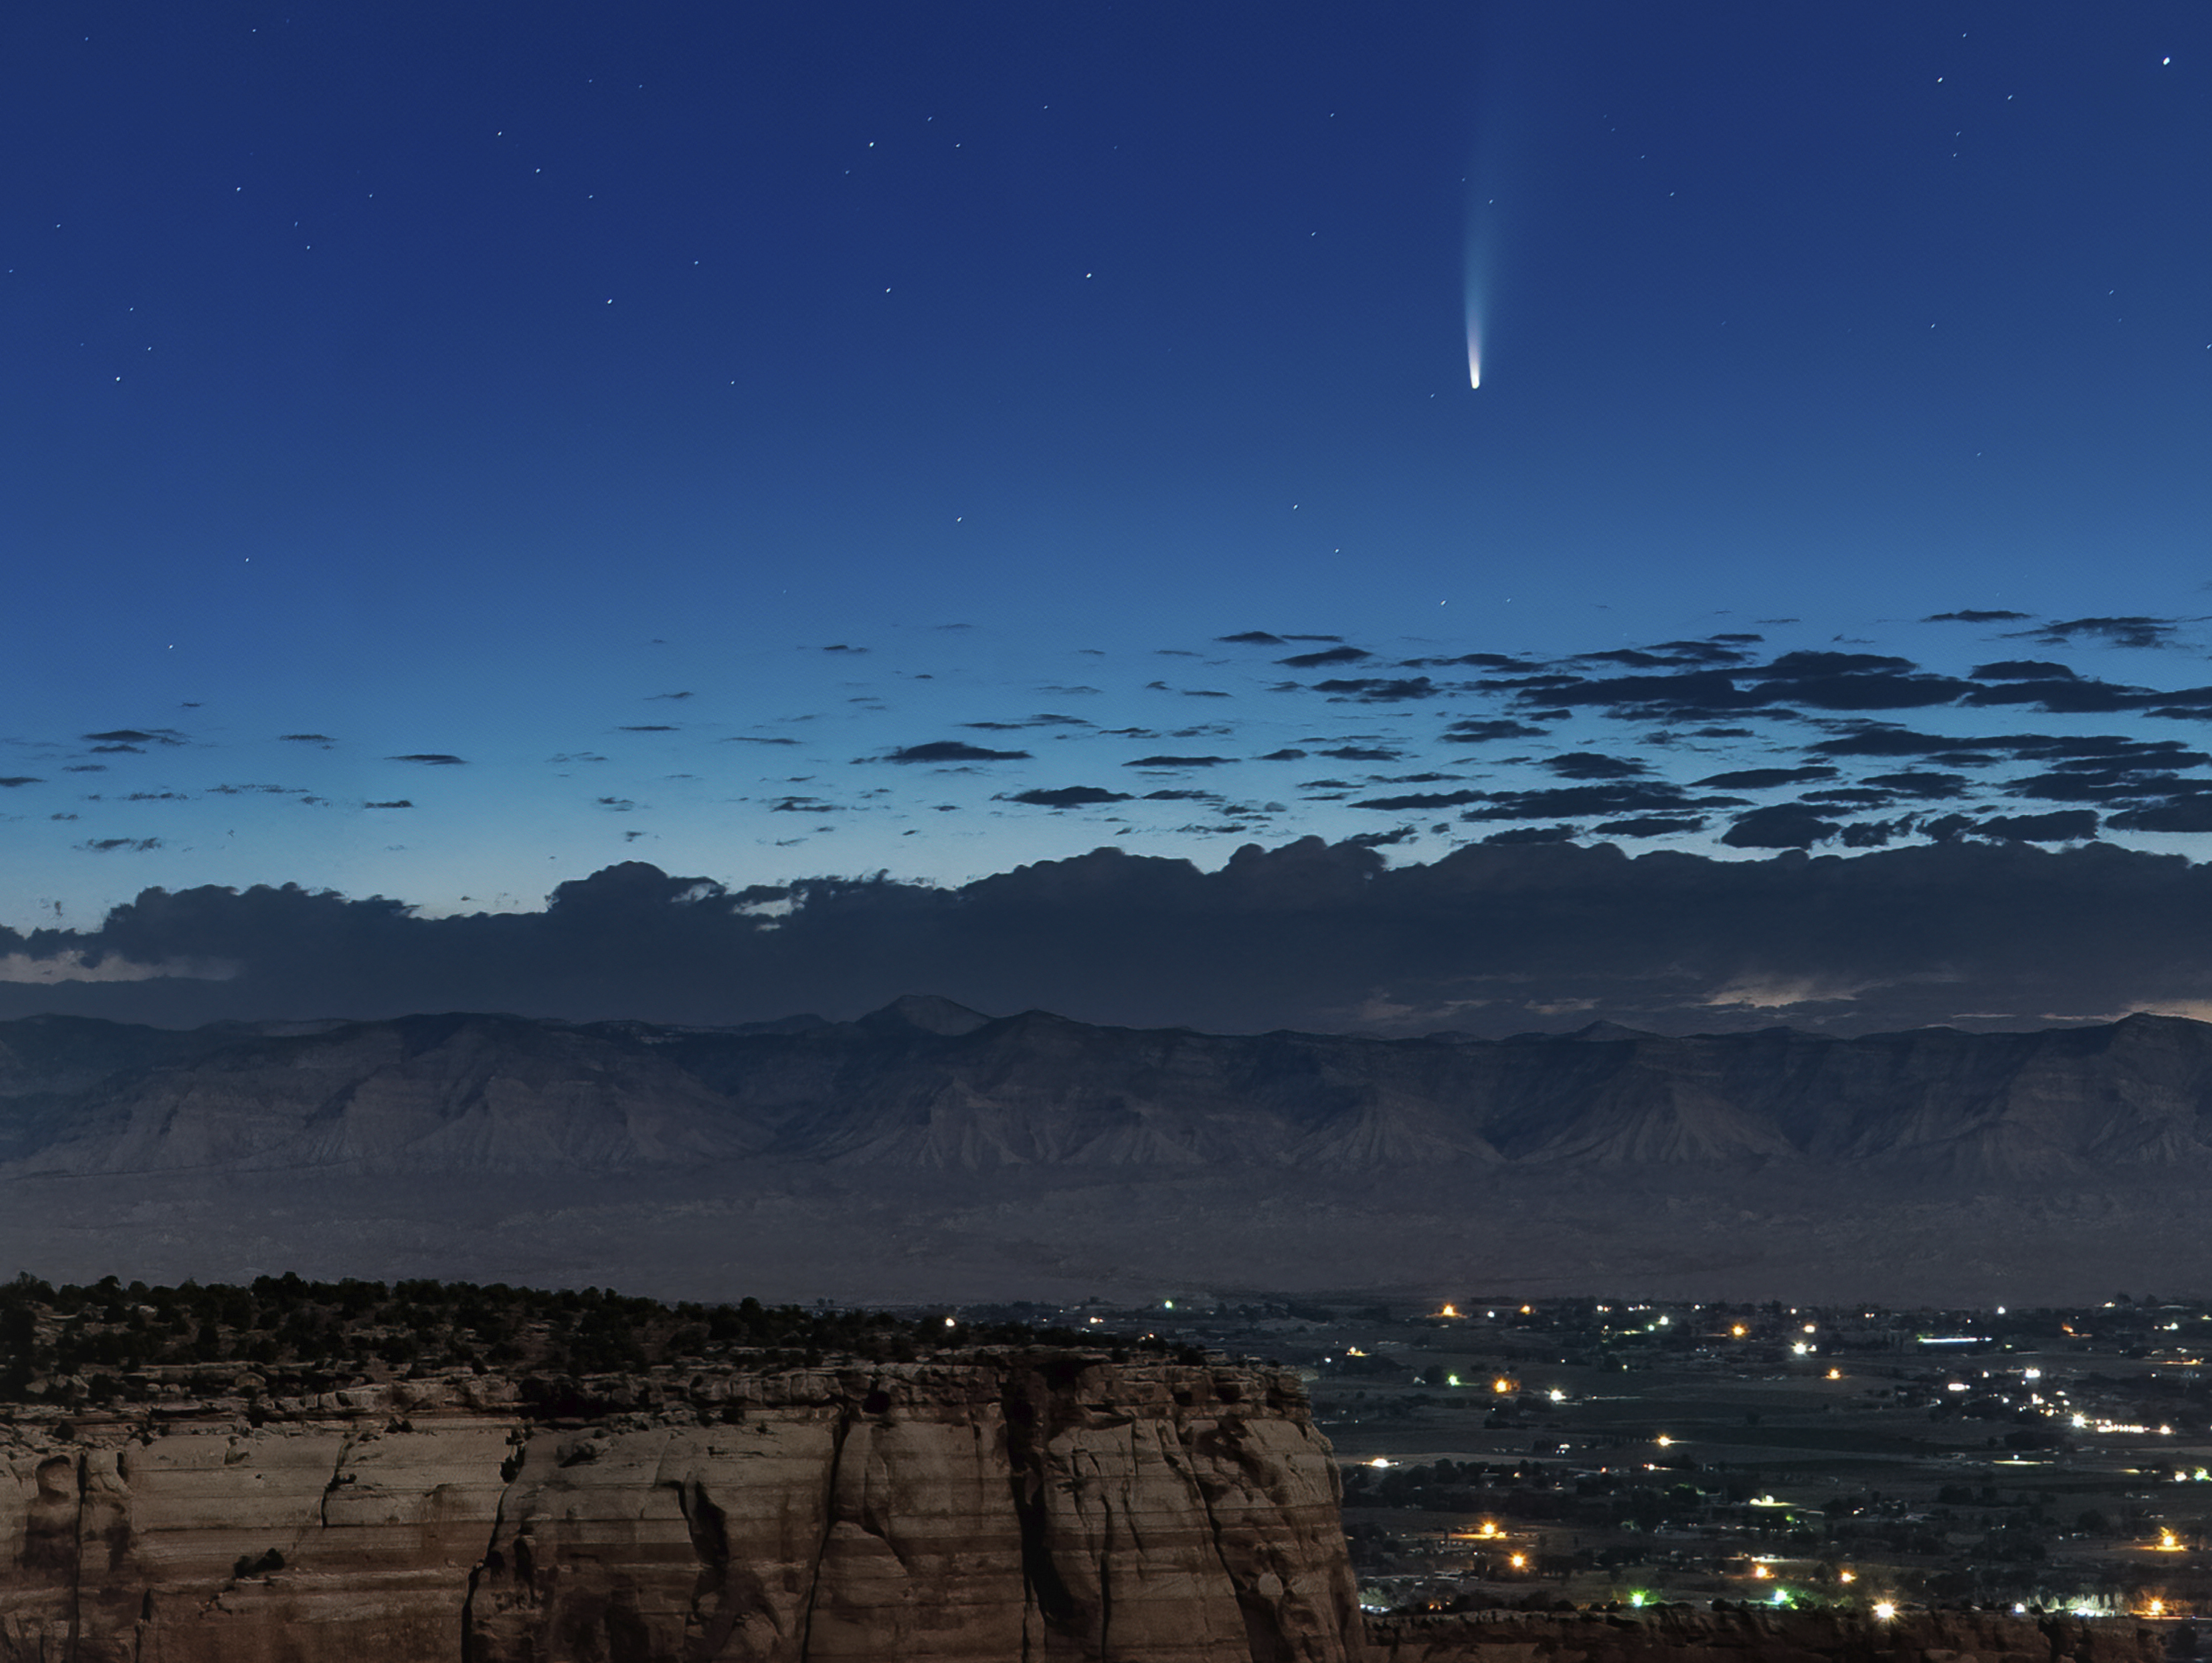 Comet Neowise soars in the horizon of the early morning sky in this view from the near the grand view lookout at the Colorado National Monument west of Grand Junction, Colo., on July 9, 2020.